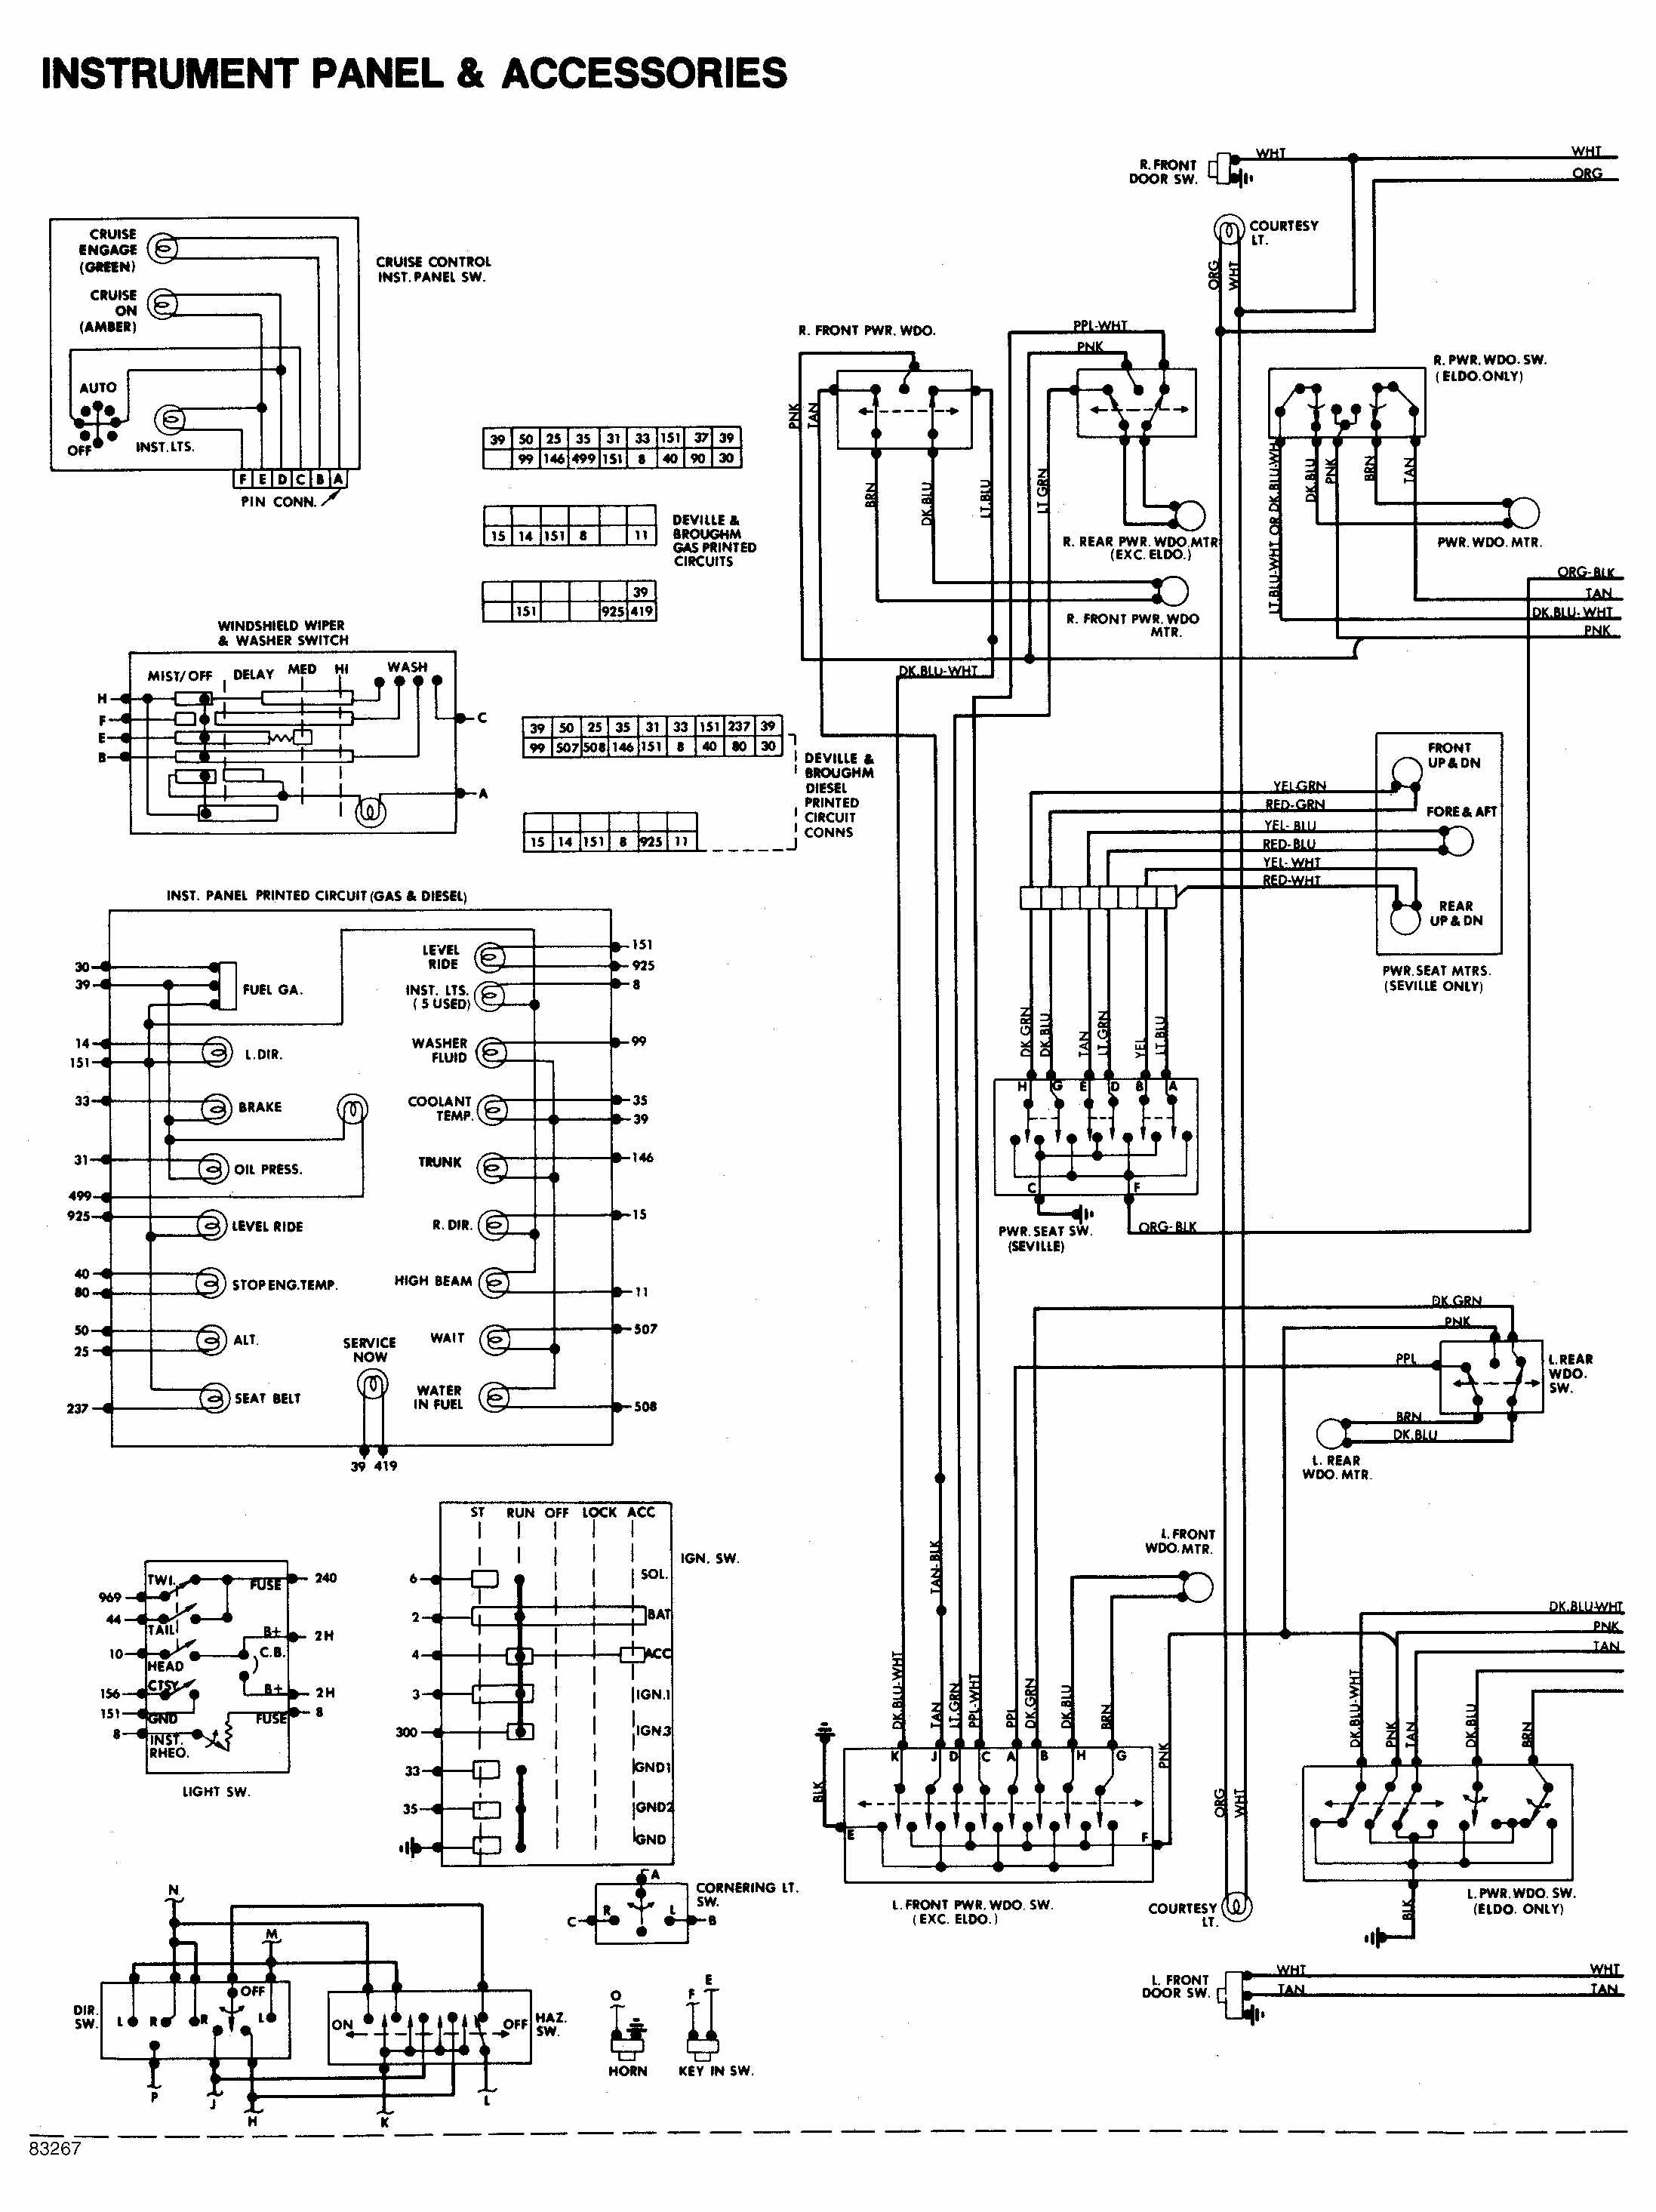 93 Mustang Dash Wiring Harness | Wiring Diagram on 1986 ford mustang wiring diagram, 2008 ford mustang wiring diagram, 1996 ford e350 wiring-diagram, 96 mustang wiring diagram, 1997 ford crown victoria wiring diagram, 1972 ford mustang wiring diagram, 1996 ford mustang belt routing, 1998 mustang stereo wiring diagram, 1996 ford mustang fuse location, 1989 ford thunderbird wiring diagram, ford aod transmission wiring diagram, 1980 ford mustang wiring diagram, 1995 ford crown victoria wiring diagram, ford 3.8 v6 engine diagram, 1996 ford mustang oil leak, 1996 ford mustang fuel pump fuse, 1964 ford mustang wiring diagram, 1995 ford aspire wiring diagram, 2001 ford explorer sport wiring diagram, 2003 ford excursion wiring diagram,